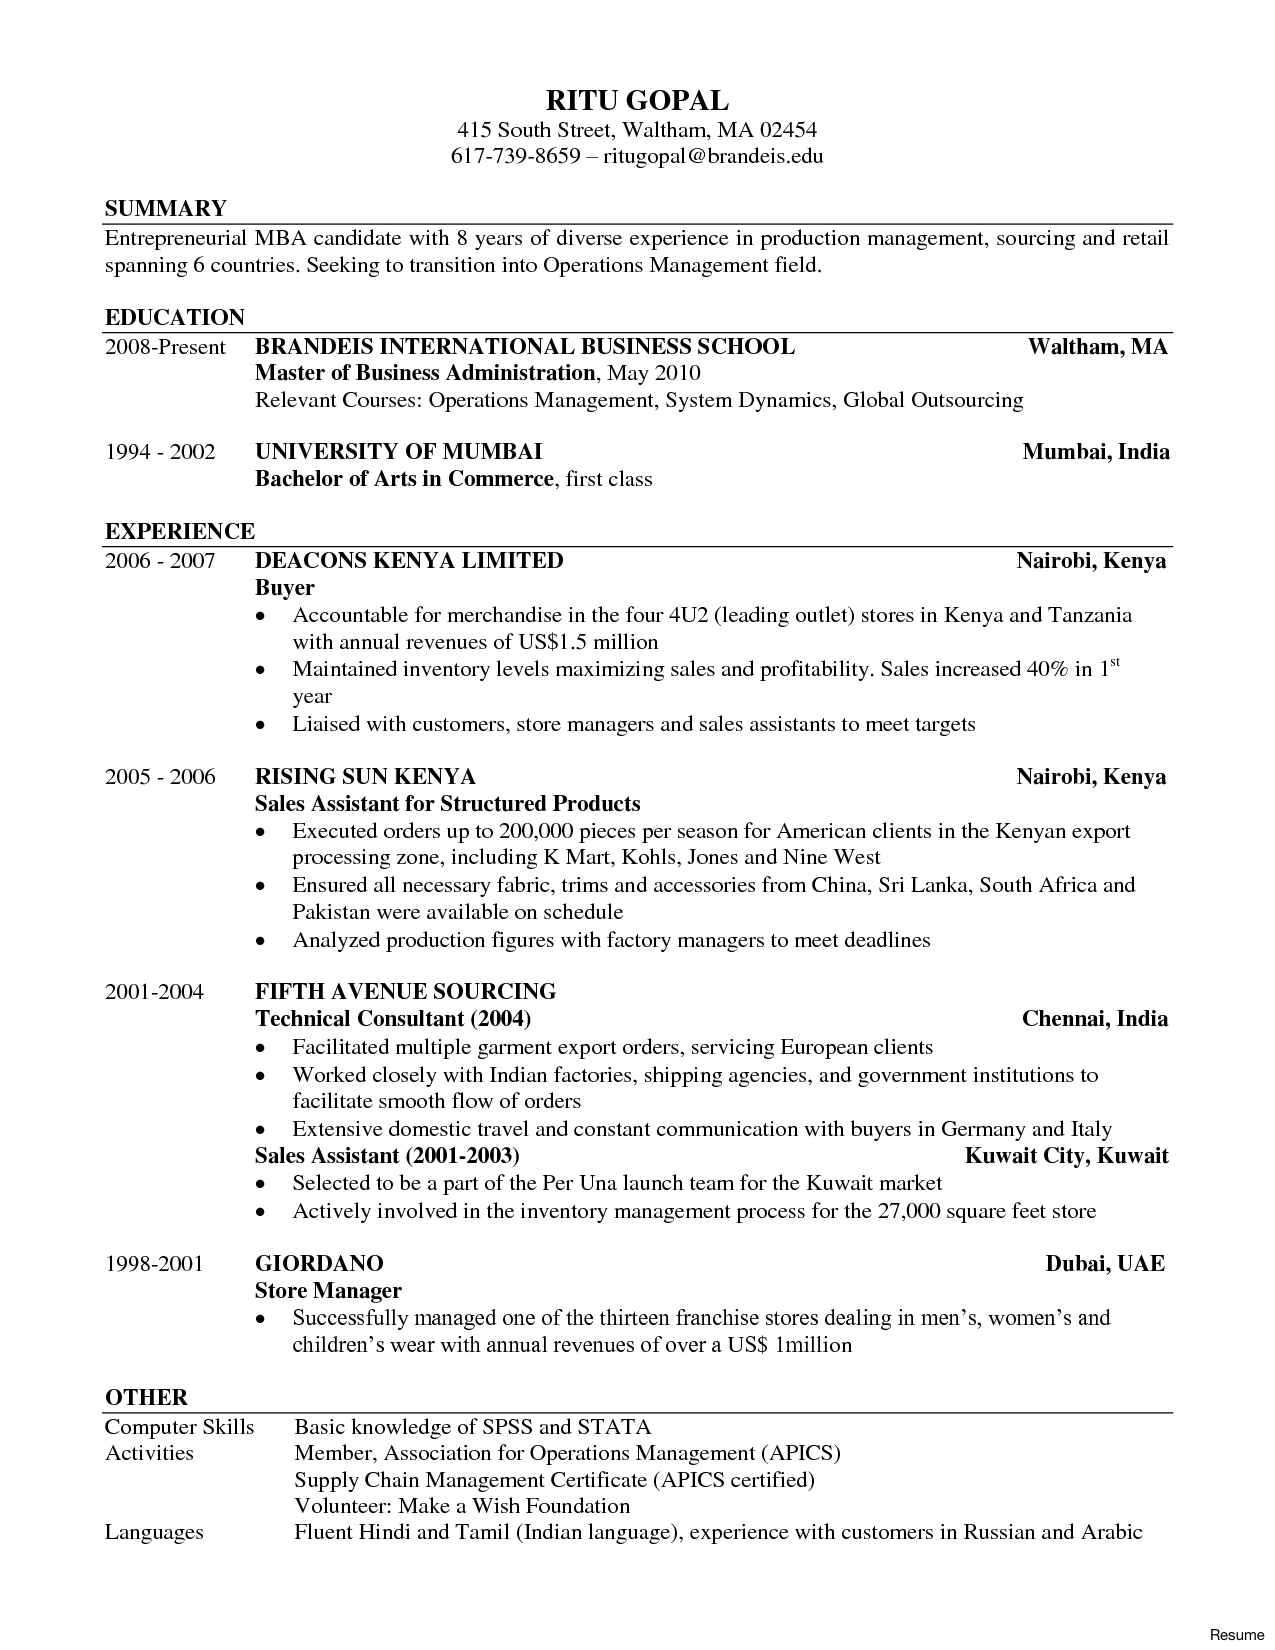 Wharton Mba Resume Template - Best Mba Resume Nmdnconference Example Resume and Cover Letter